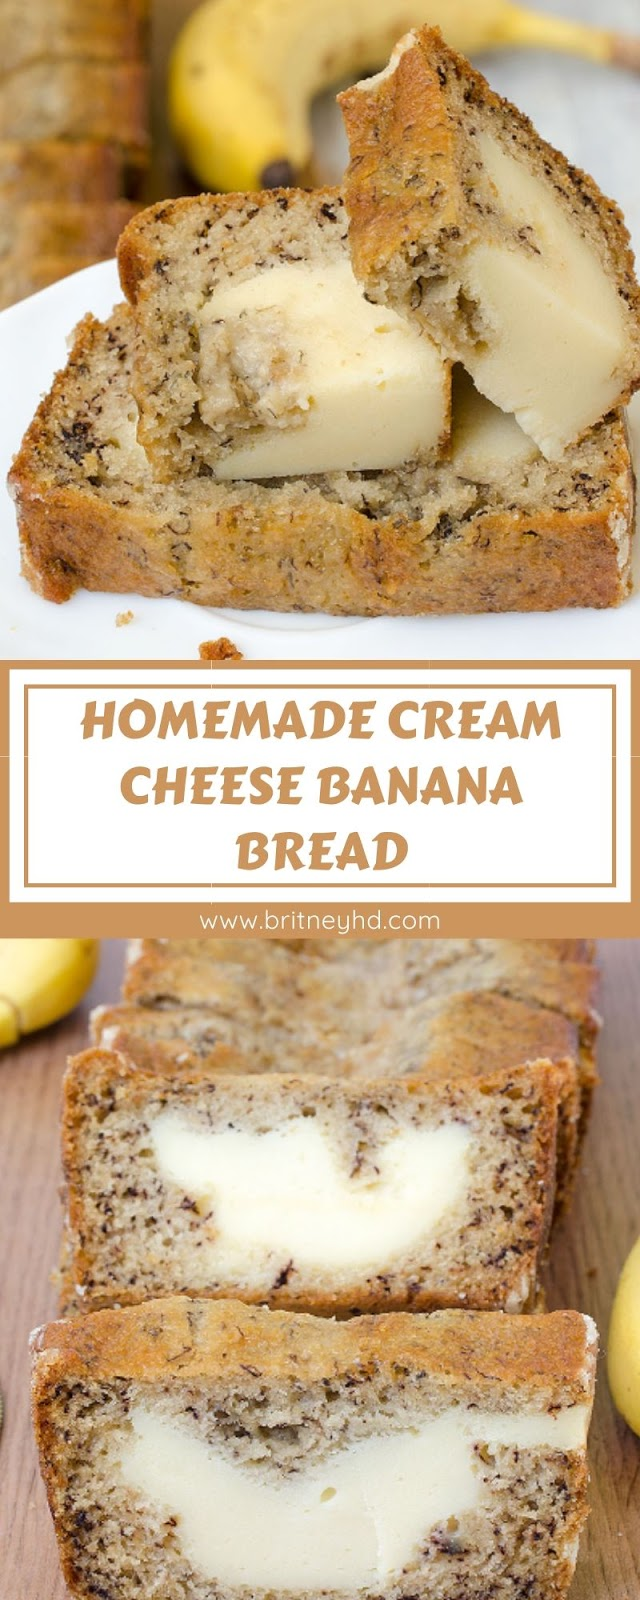 HOMEMADE CREAM CHEESE BANANA BREAD